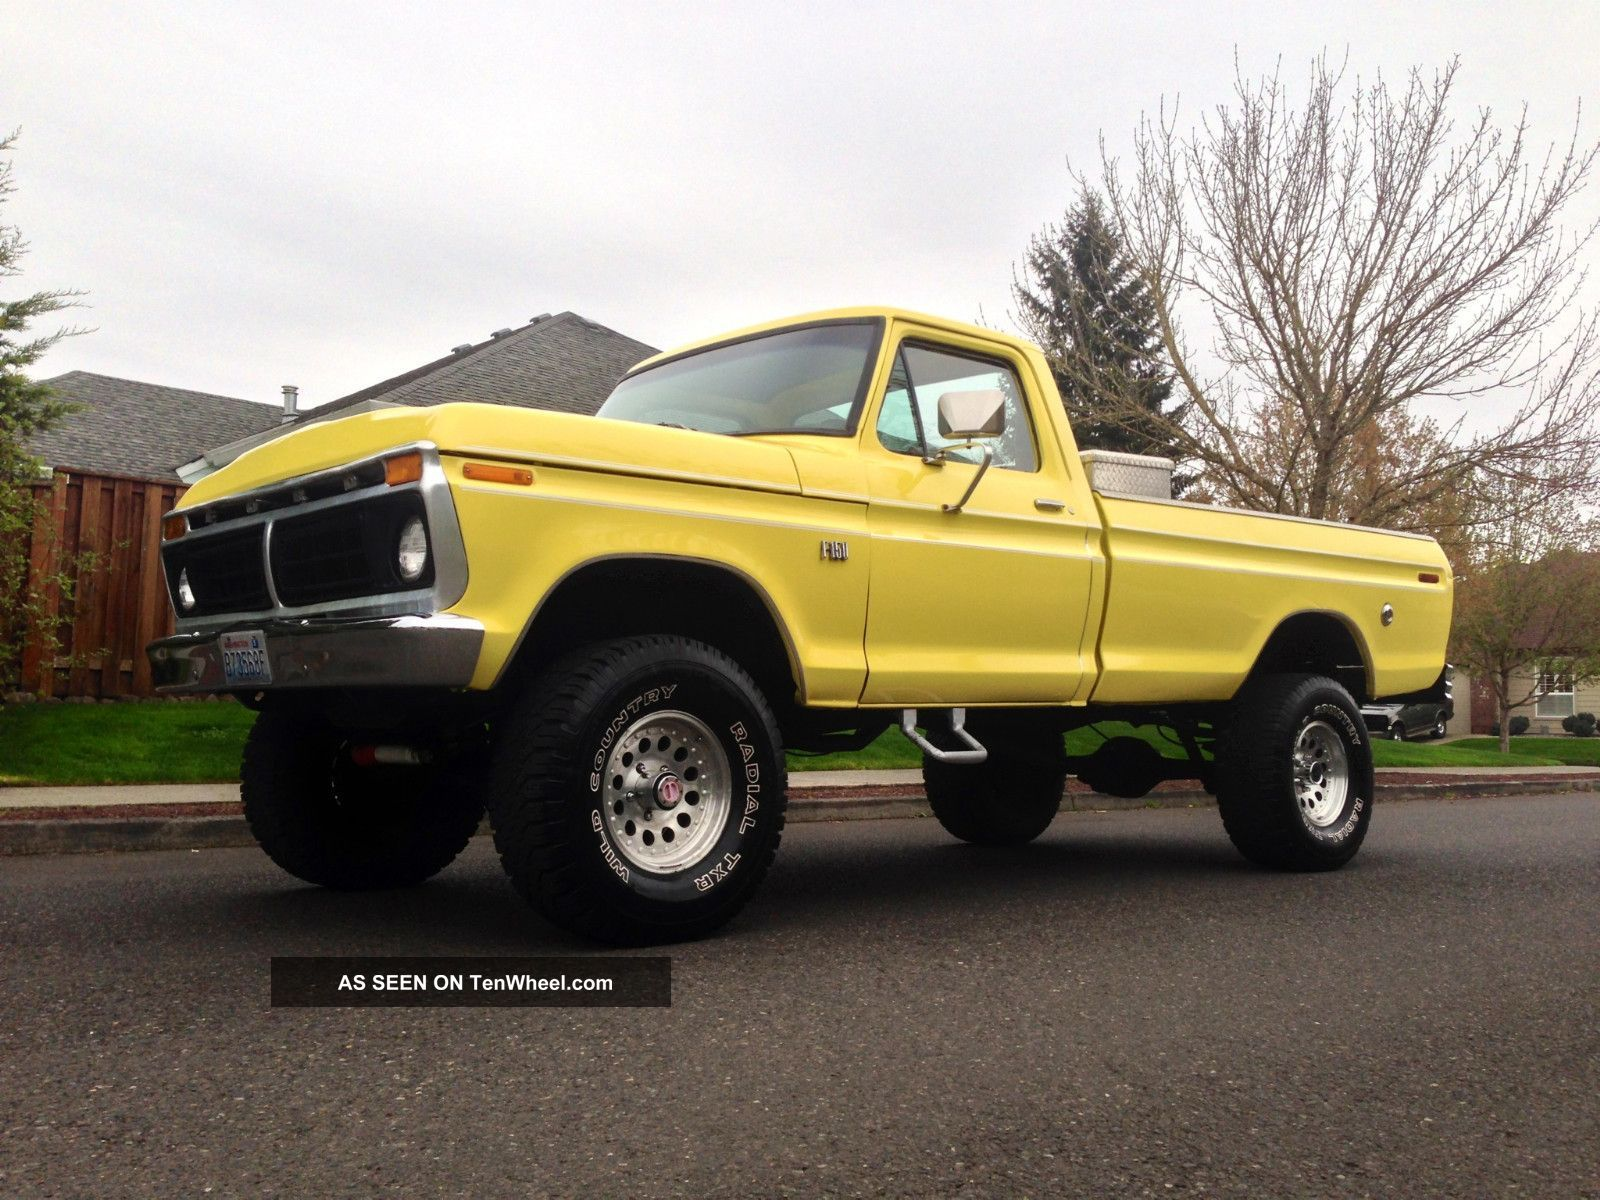 1976 ford f150 ranger 4x4 xlt longbed 1977 1975 1978 1974 f 150 photo